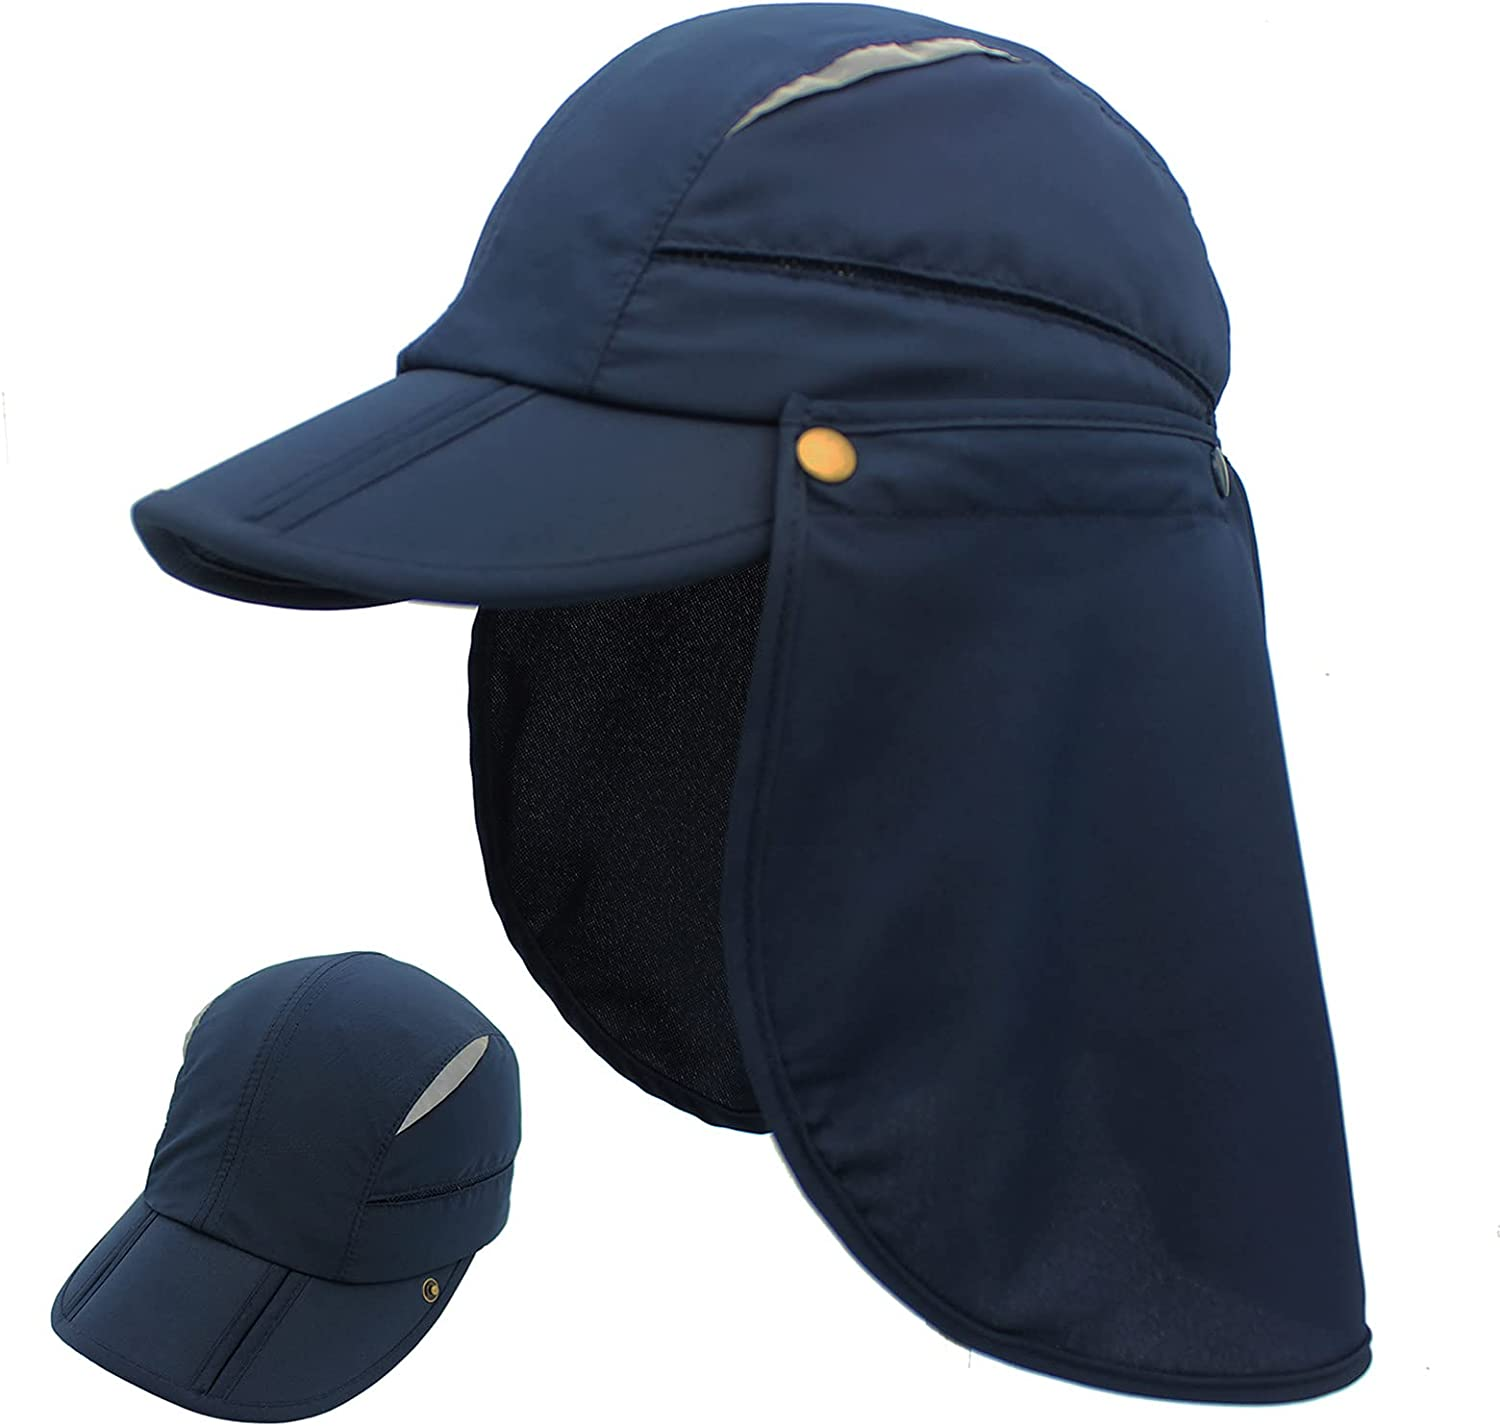 Kids Sun Hat UPF 50+ Sun Protection Bucket Cap Removable Neck Flap Hat for Toddlers Boys Girls